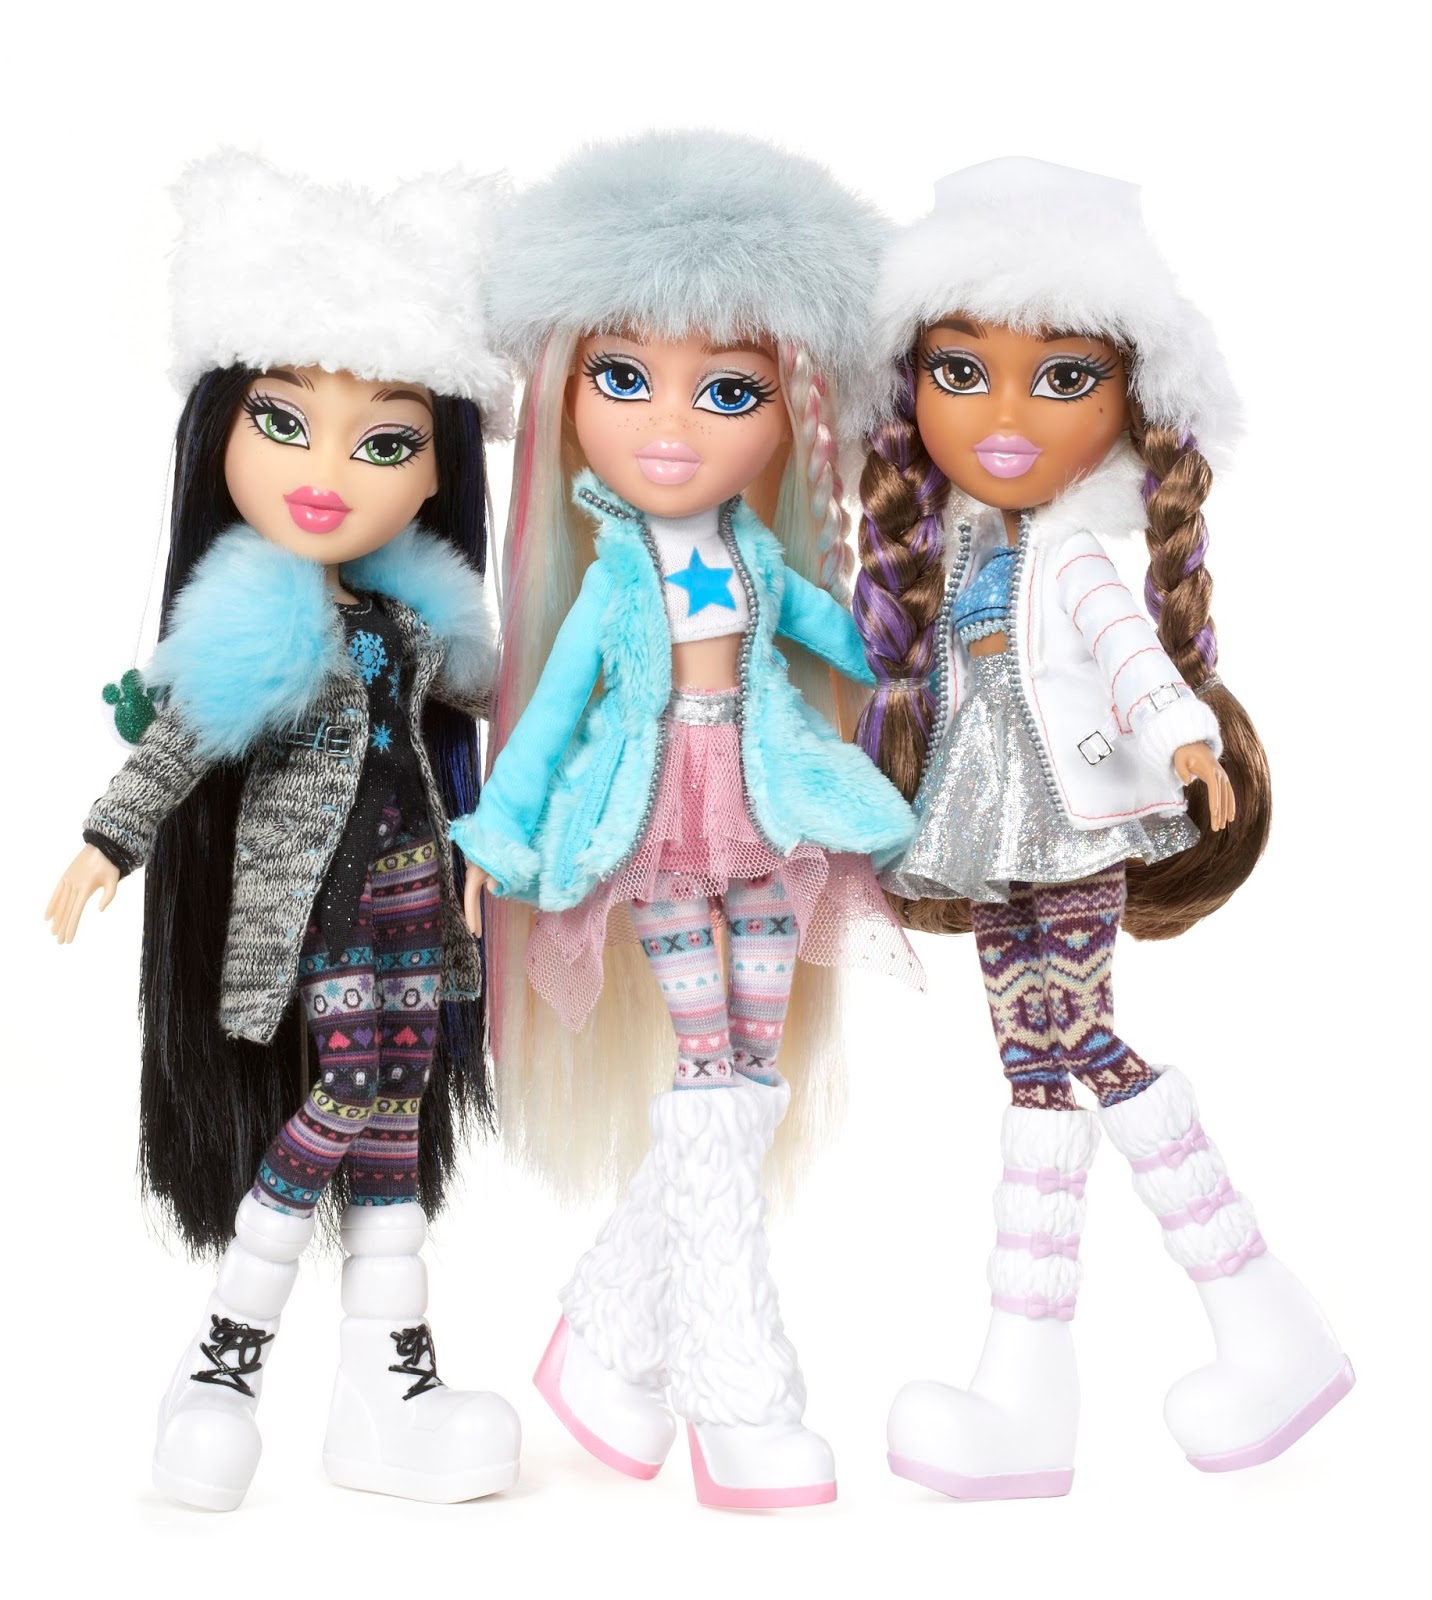 bratz dolls essay giveaway bratz snowkissed doll wife mum student bum